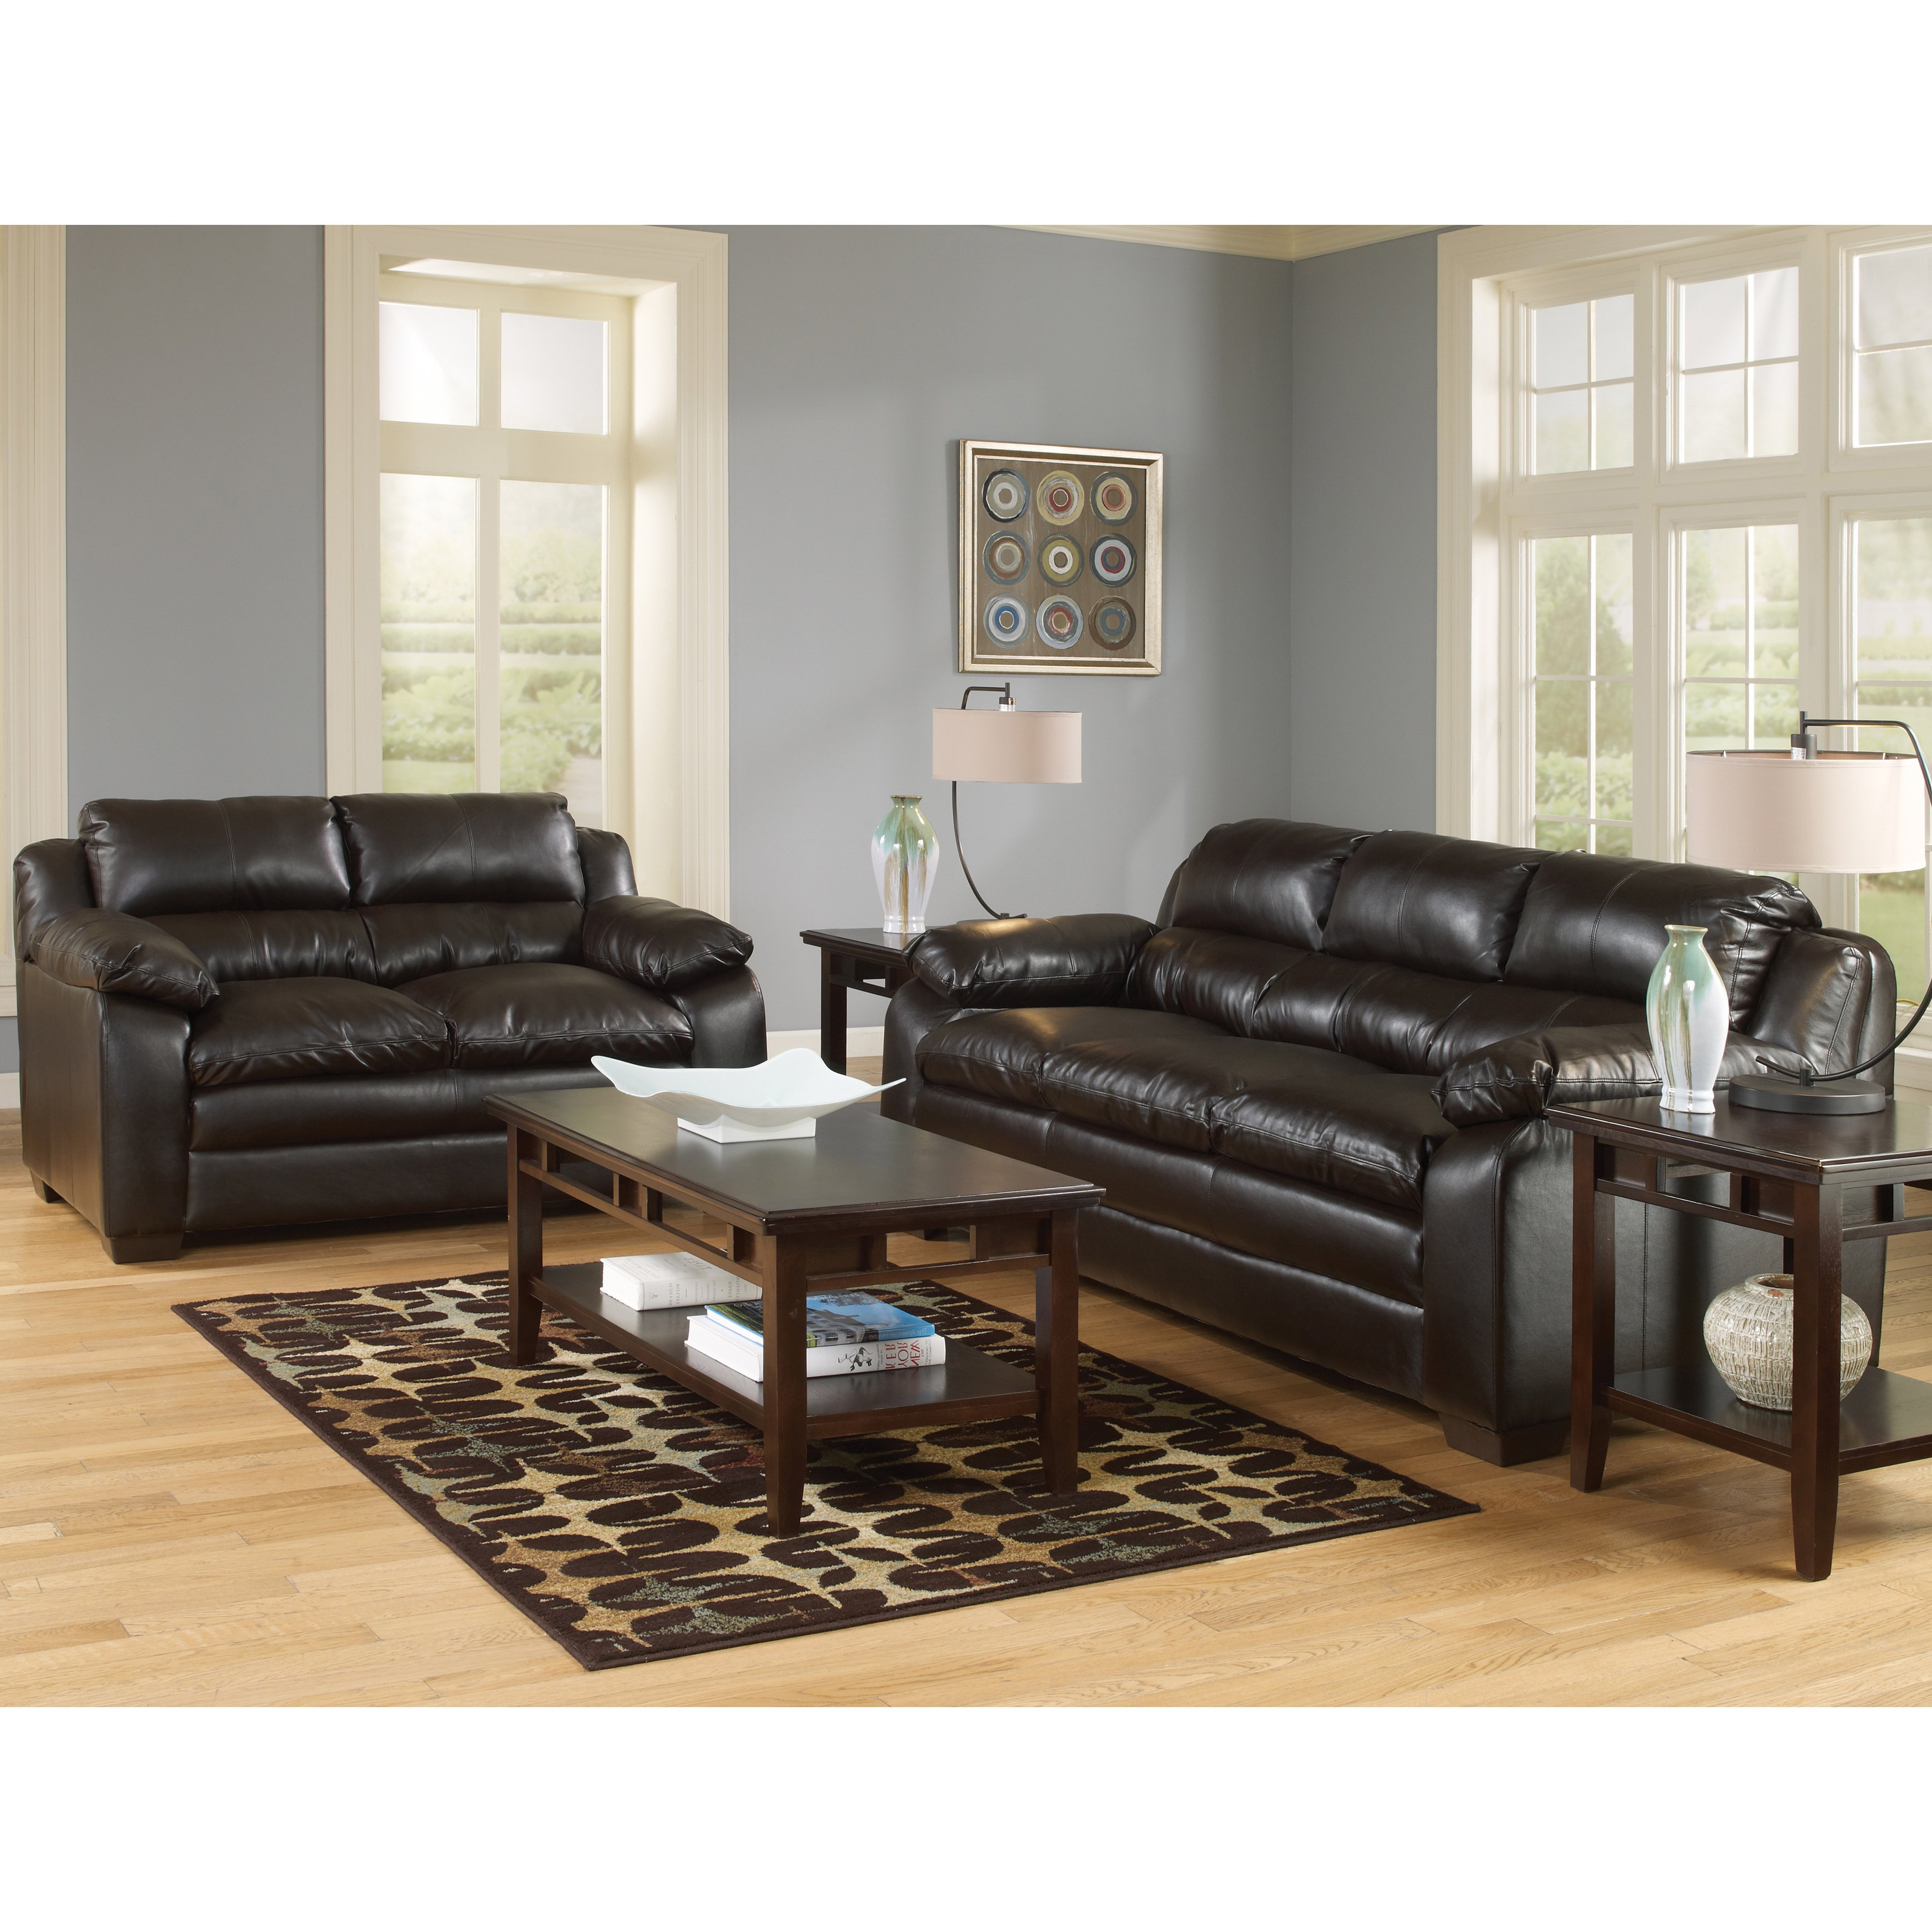 Shop Art Van Maddox Espresso Sofa And Loveseat Set – Free Shipping Throughout Well Known Maddox Oversized Sofa Chairs (View 20 of 20)